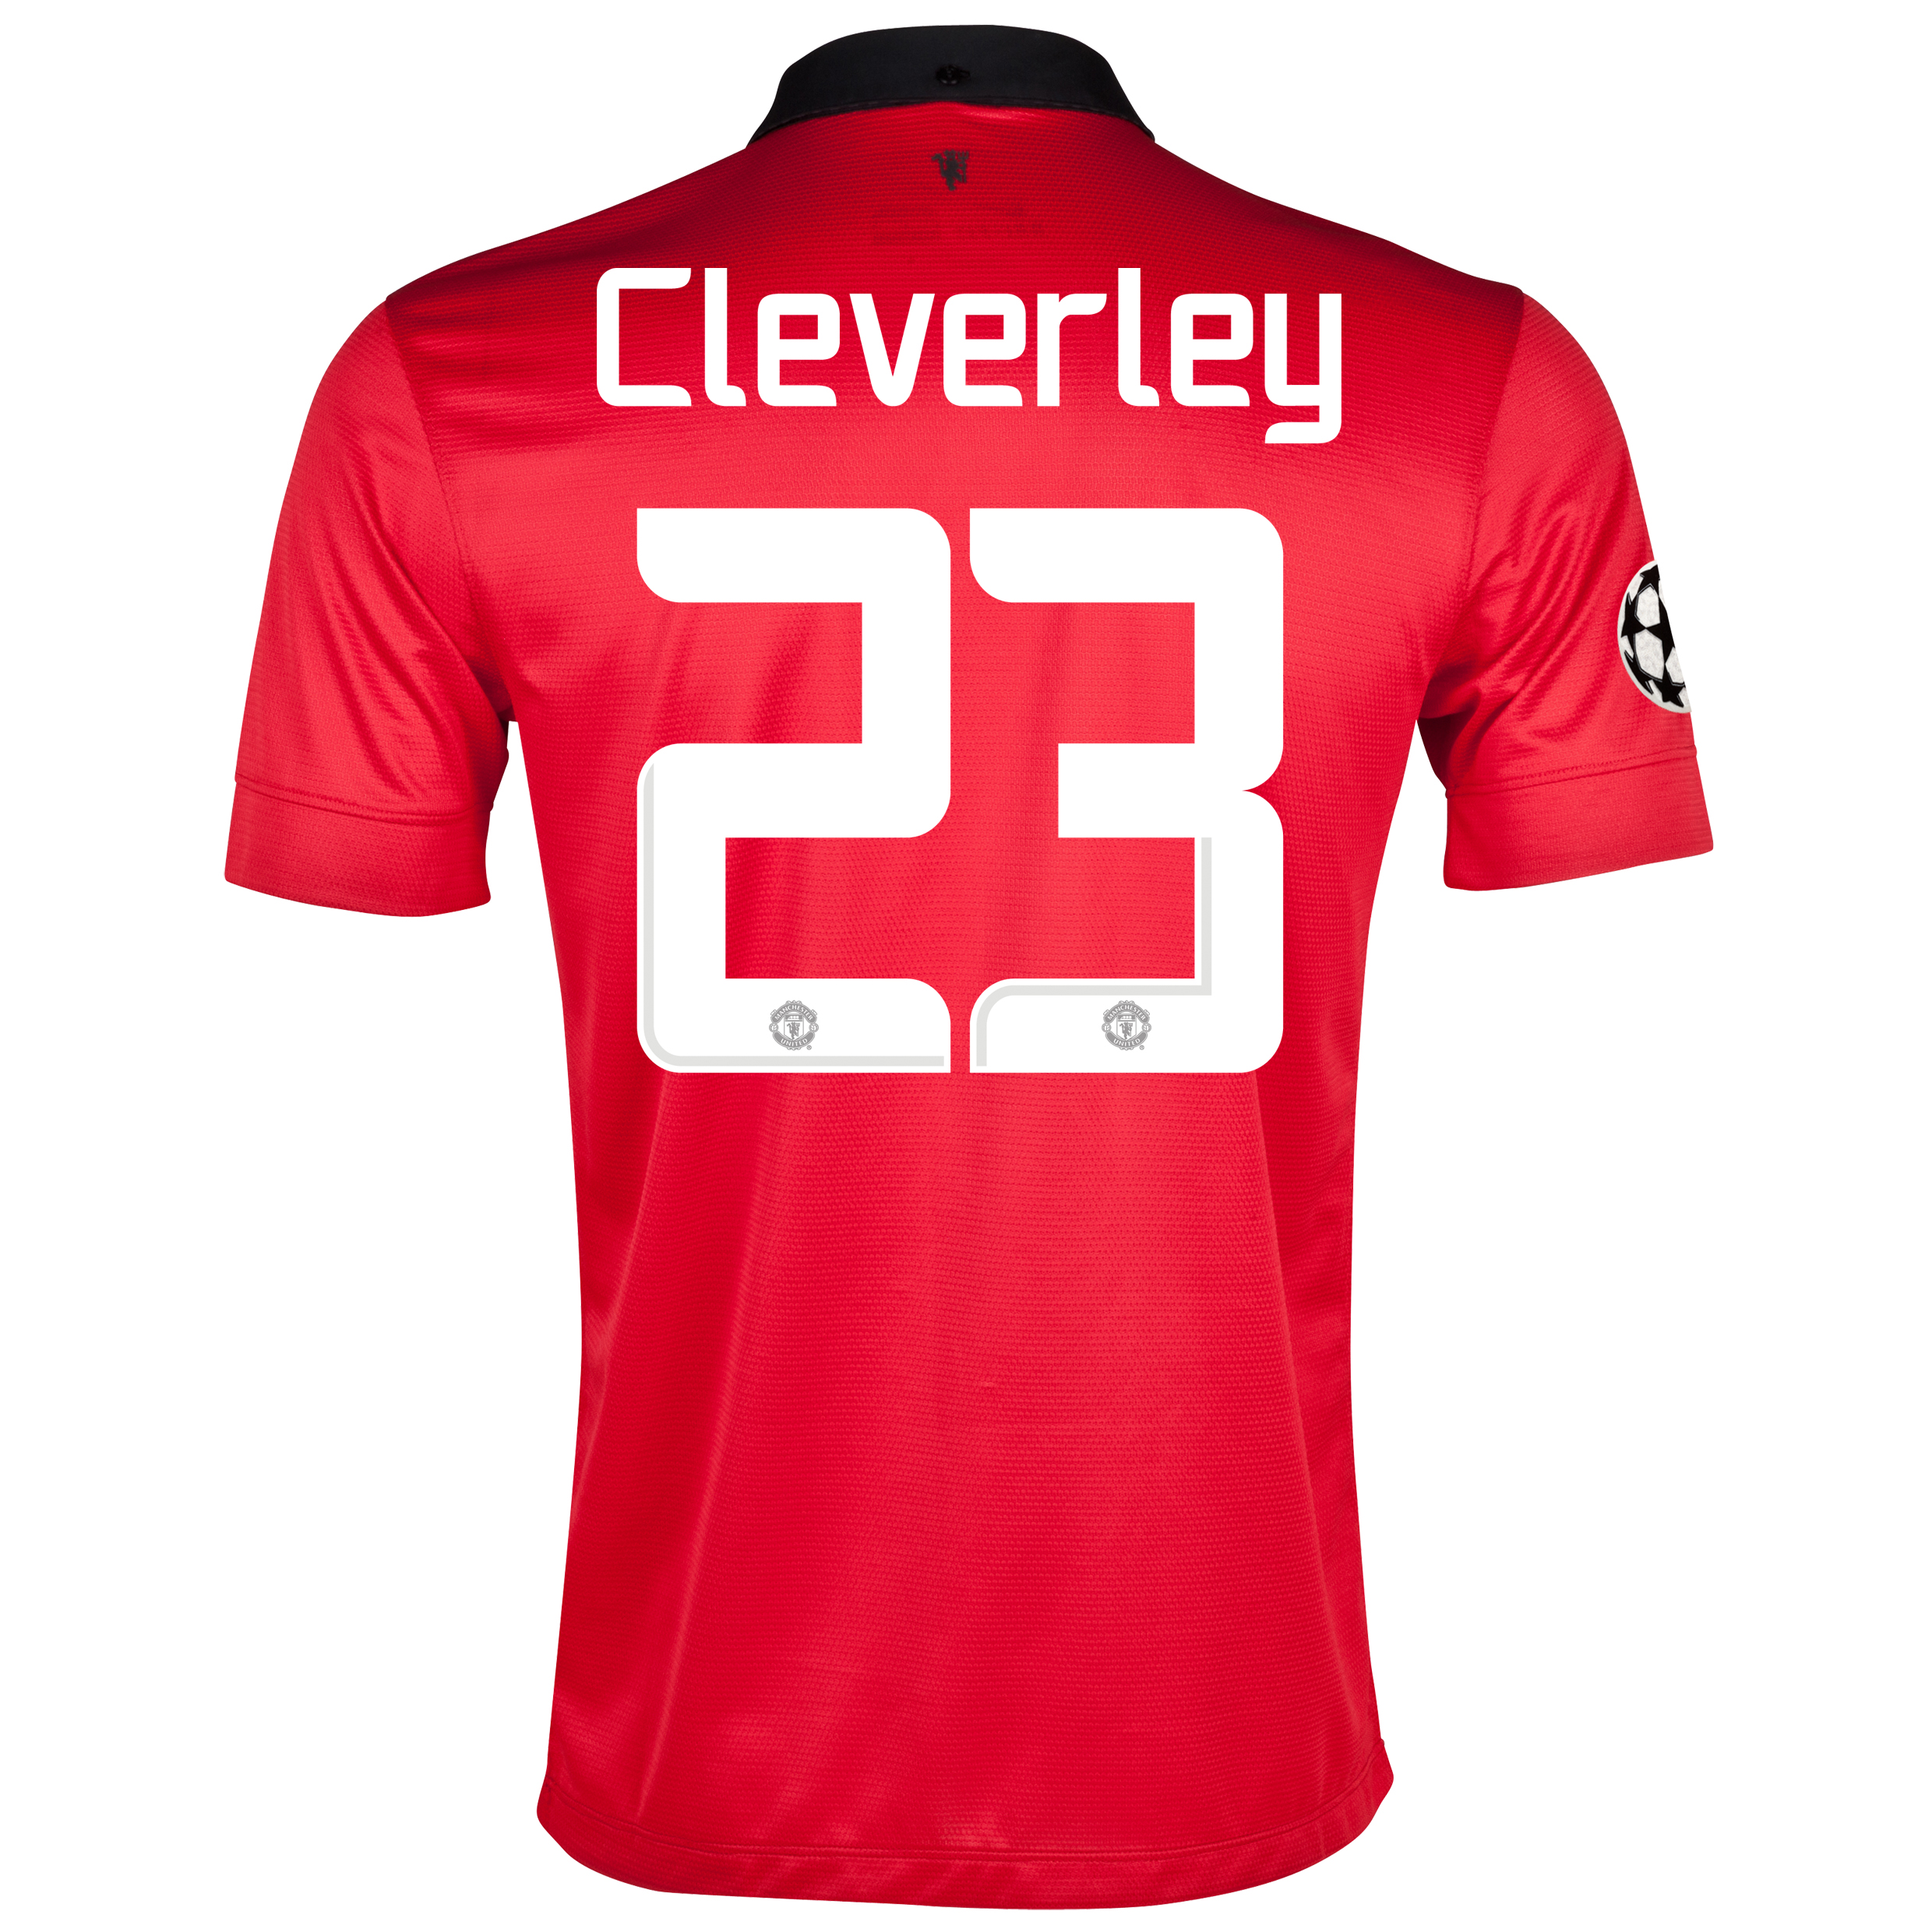 Manchester United UEFA Champions League Home Shirt 2013/14 - Kids with Cleverley 23 printing